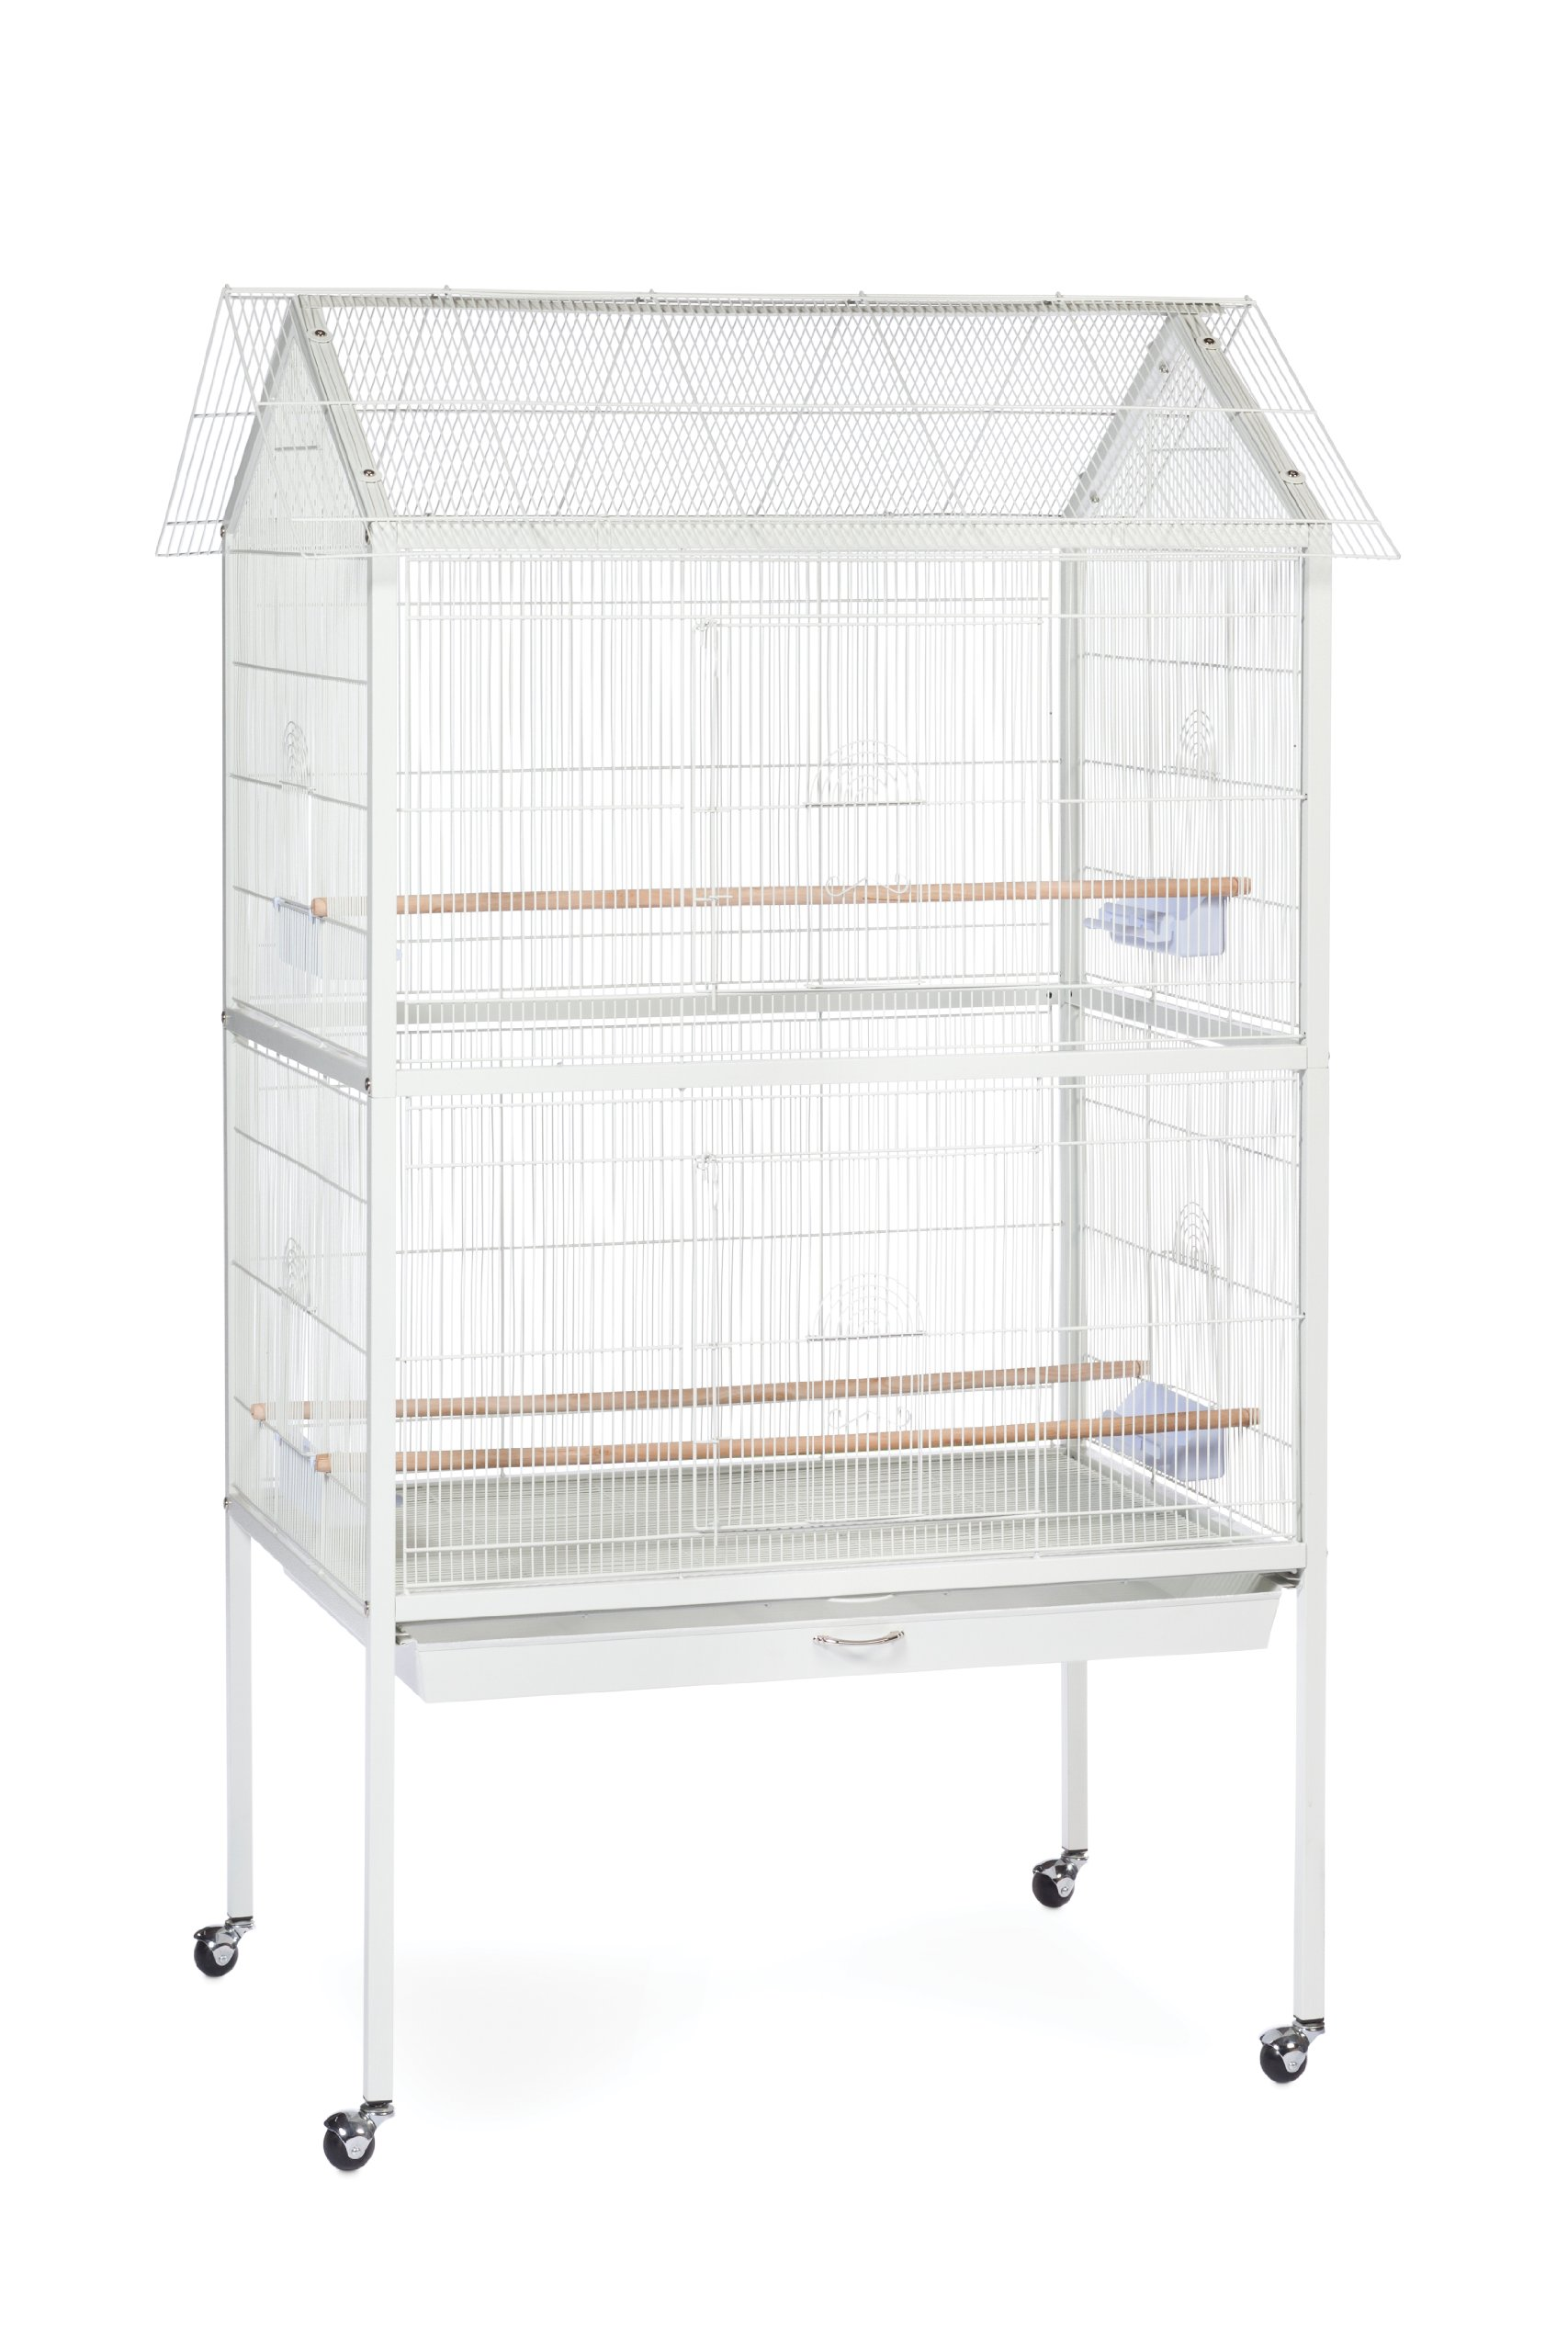 Prevue Pet Products F030 Aviary Flight Cage, White by Prevue Hendryx